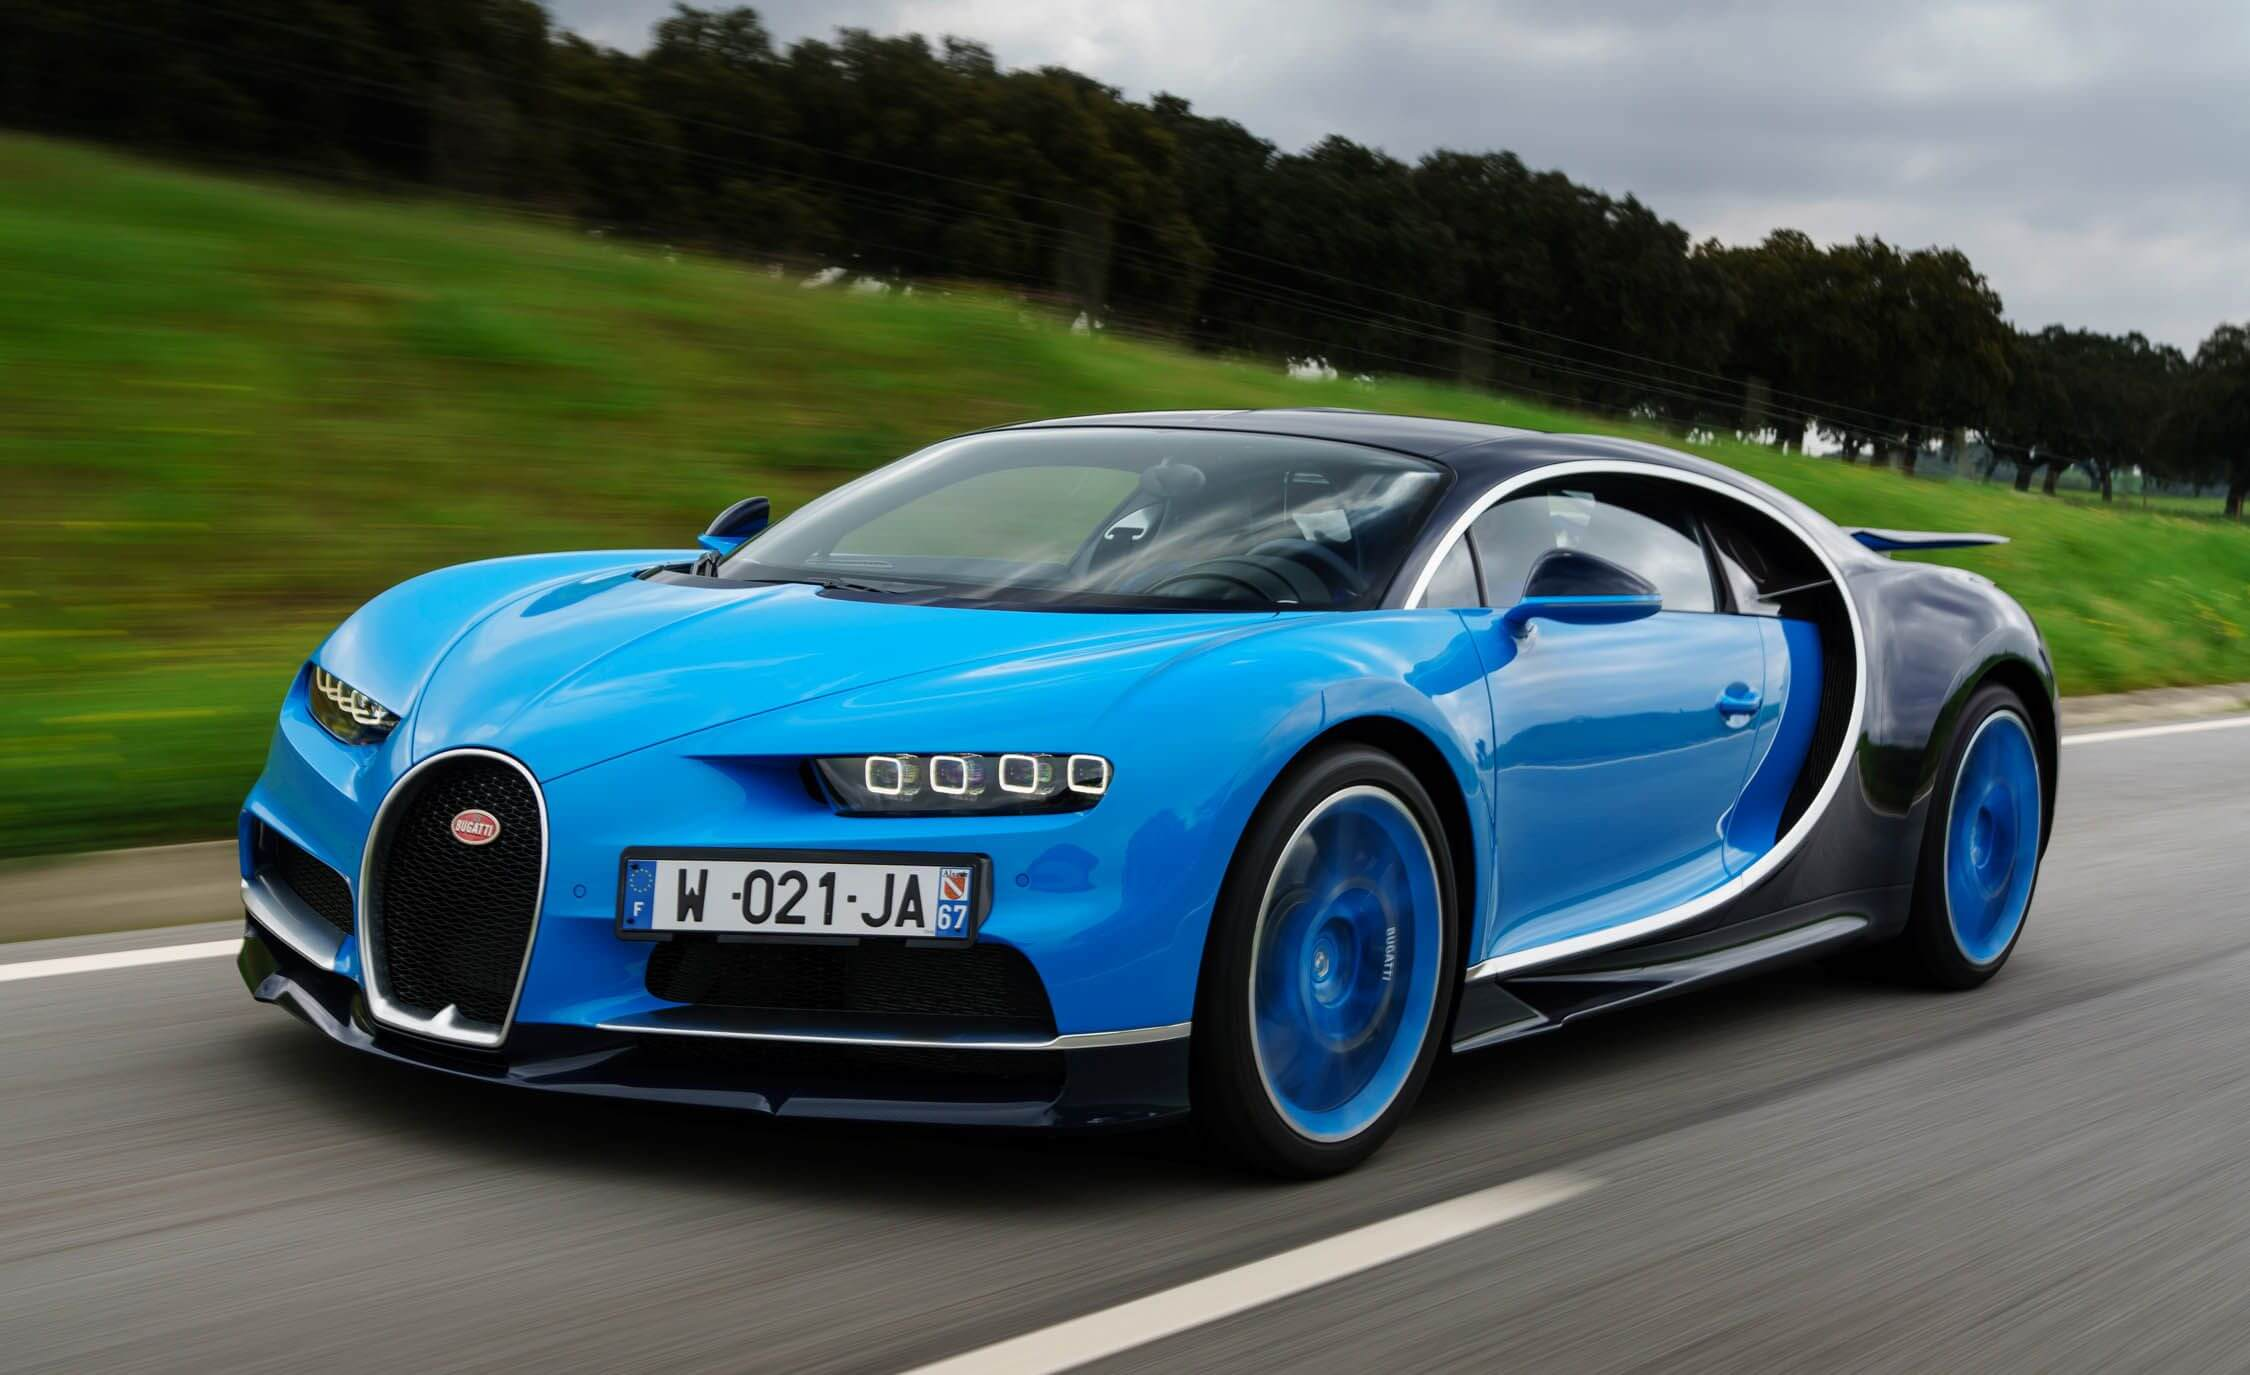 Top 15 Most Expensive Cars in The World For 2018 - Live ...